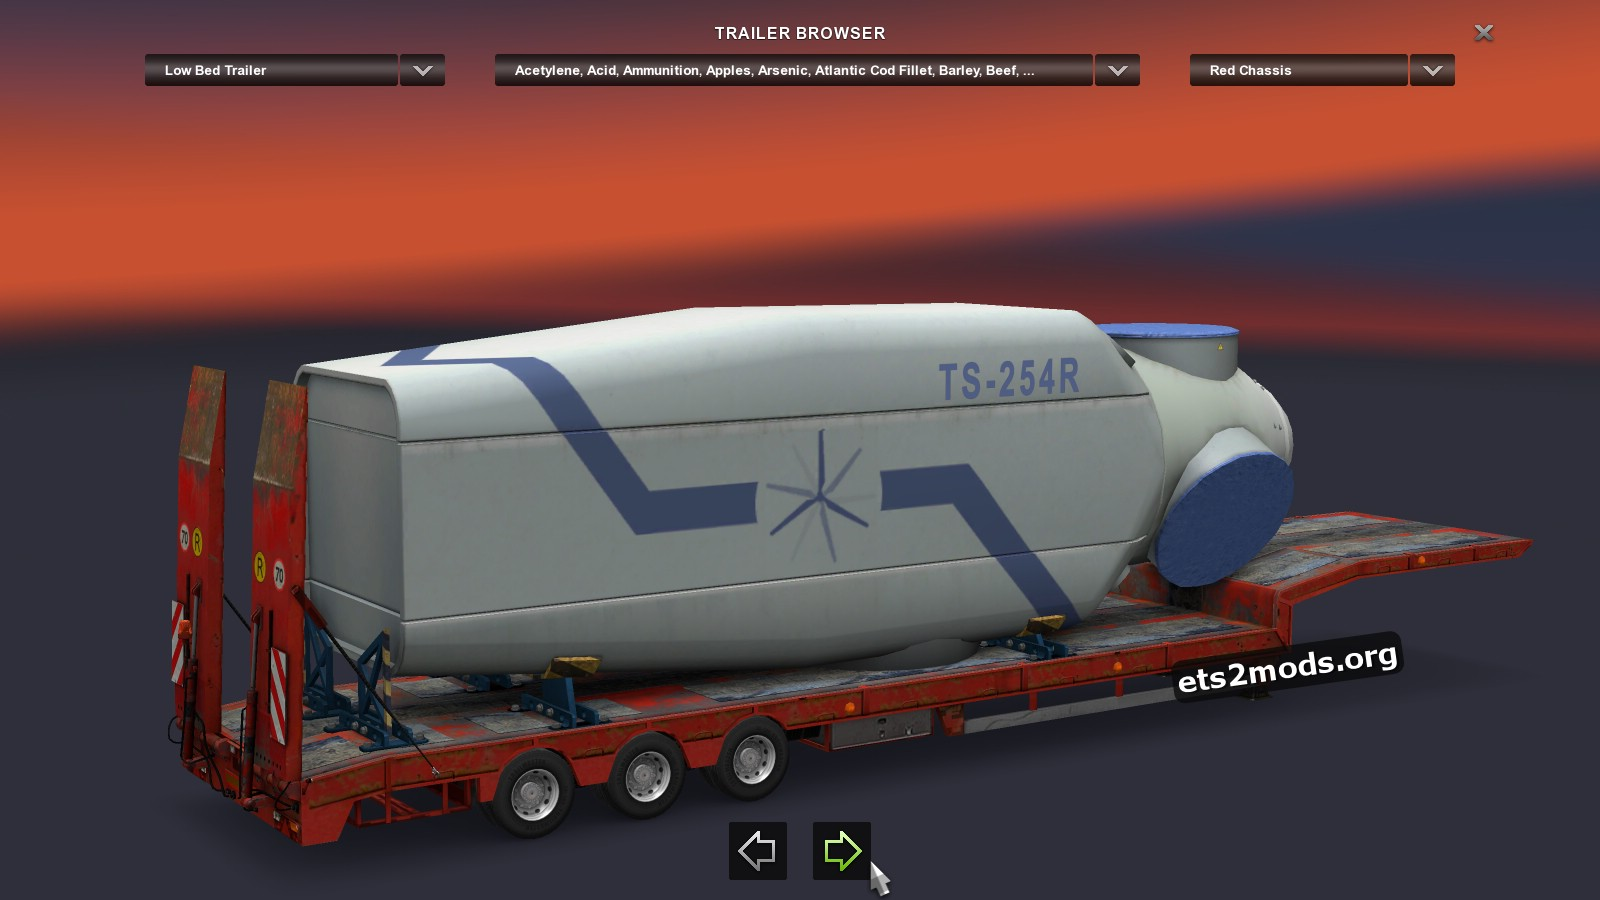 Wind Turbine Nacelle Trailer